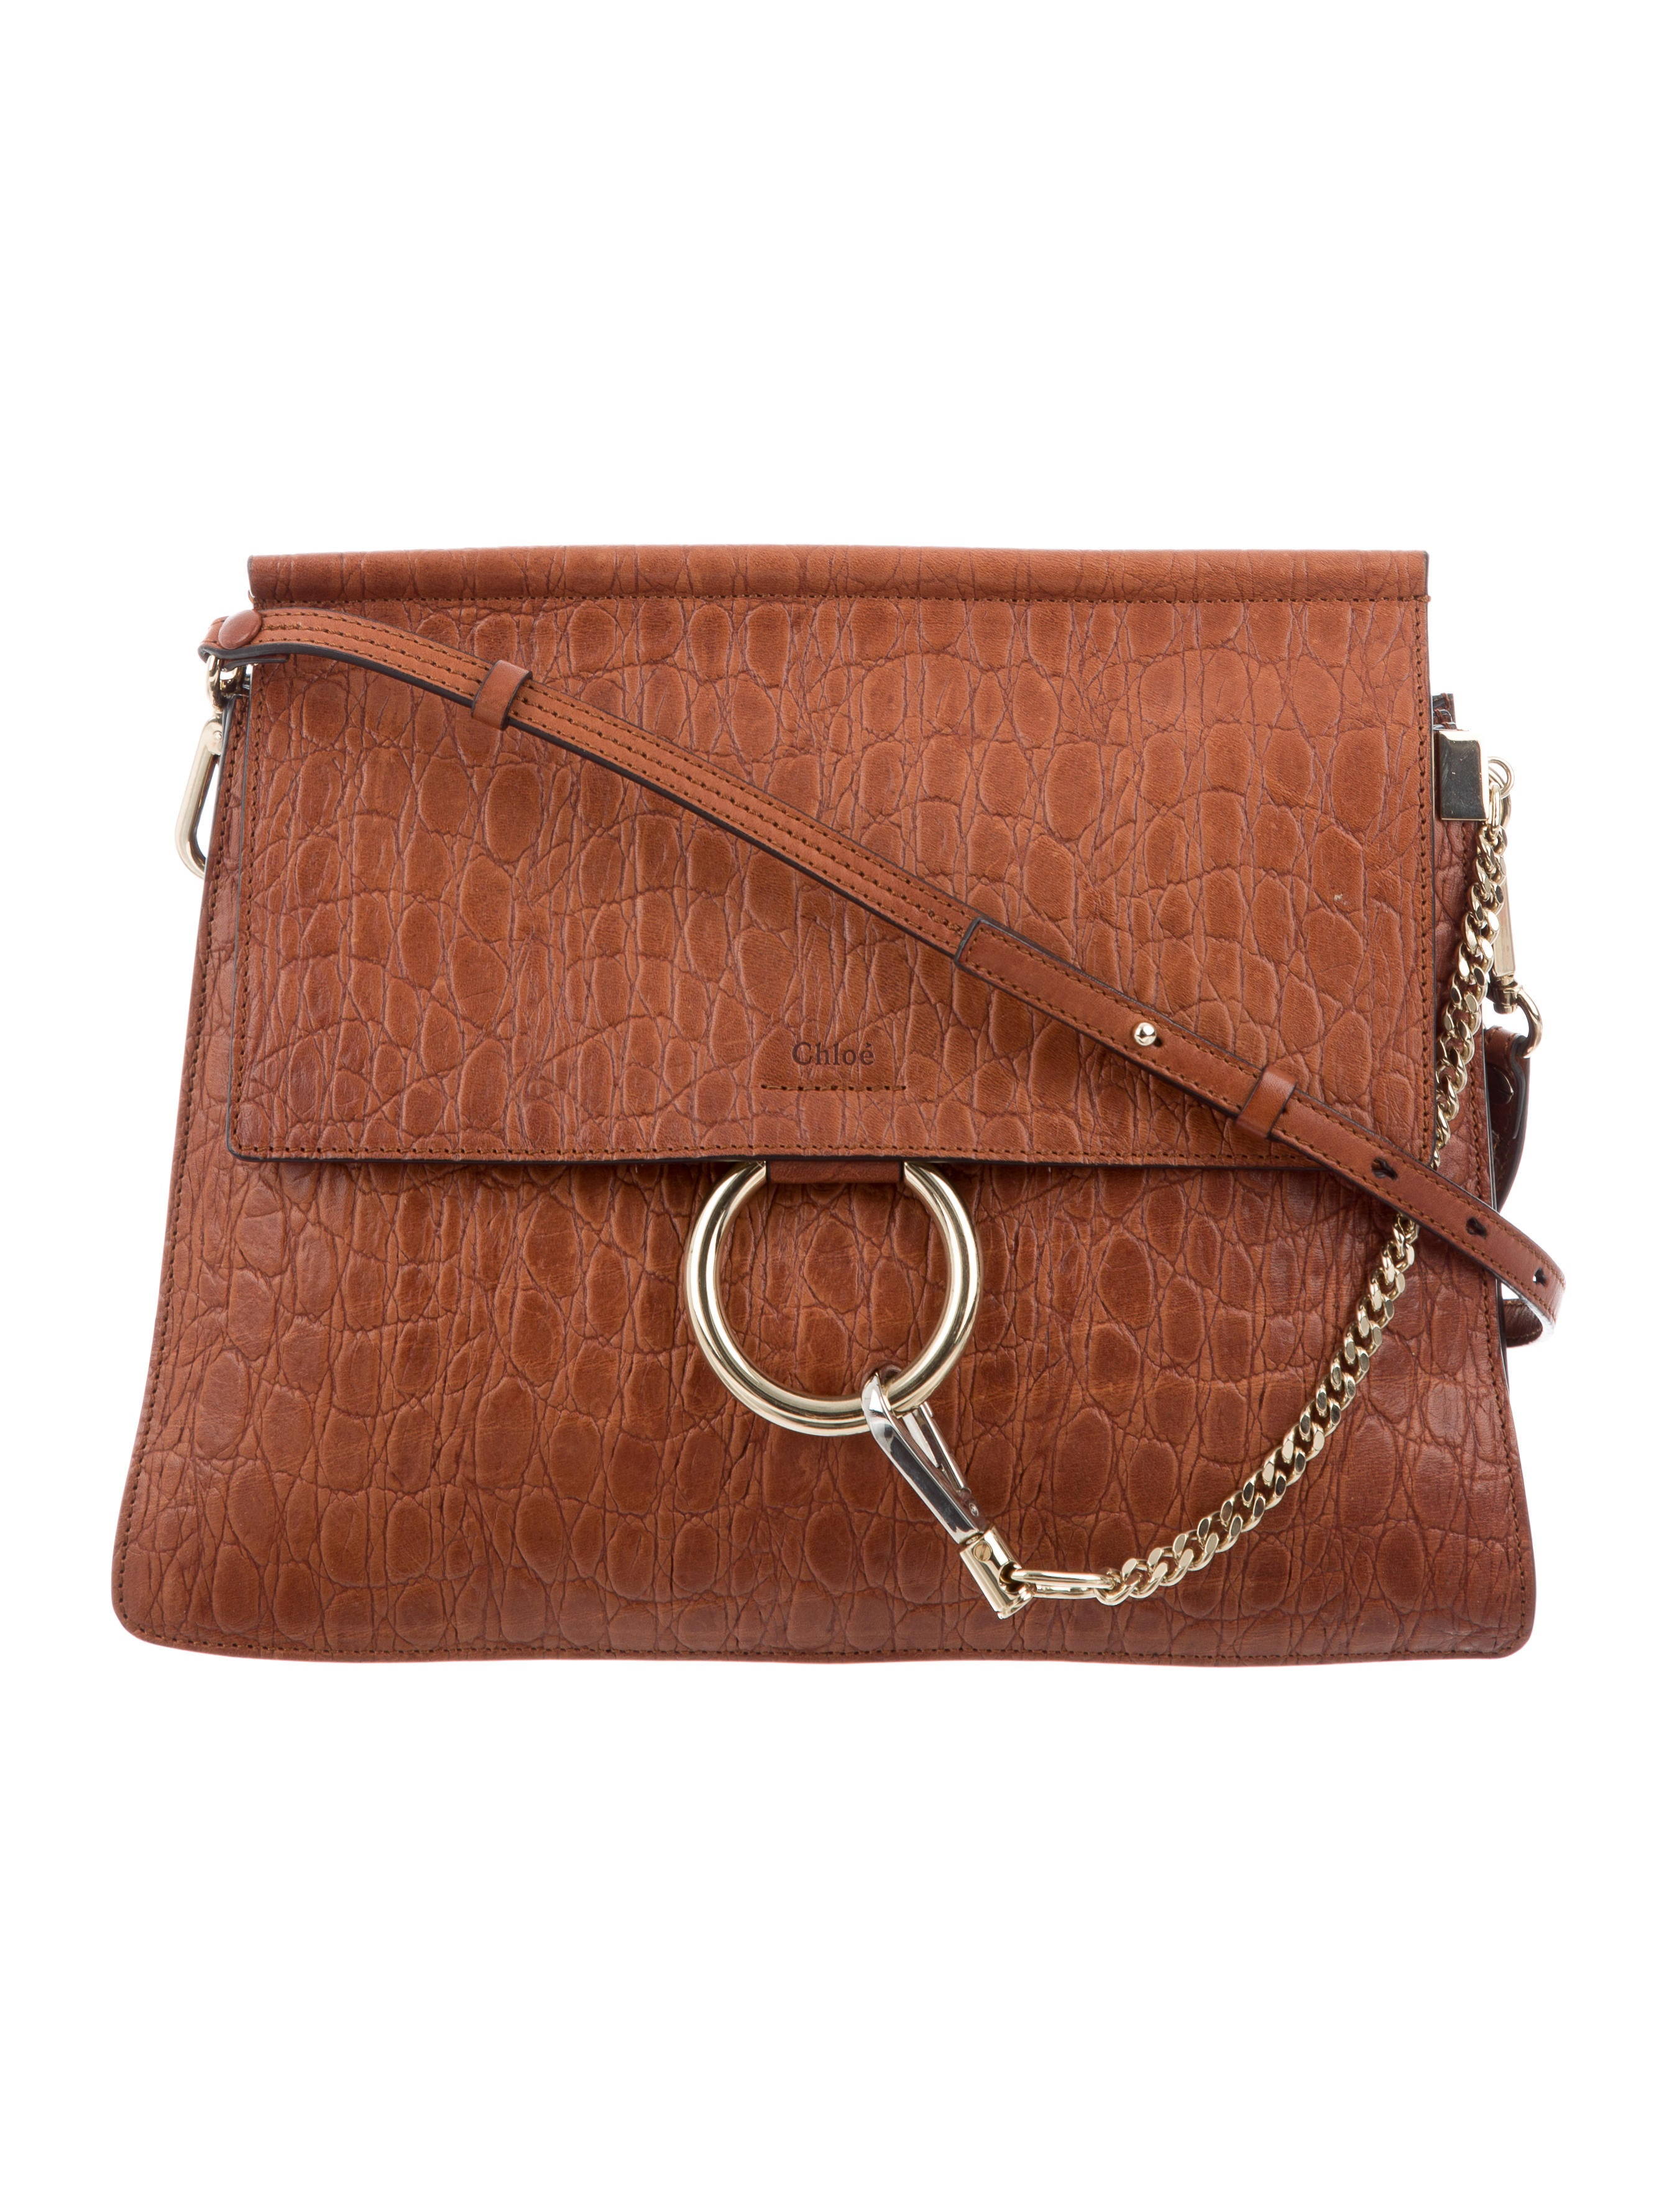 cb4968bb8b51 Chloe Faye Bag Therealreal   Stanford Center for Opportunity Policy ...